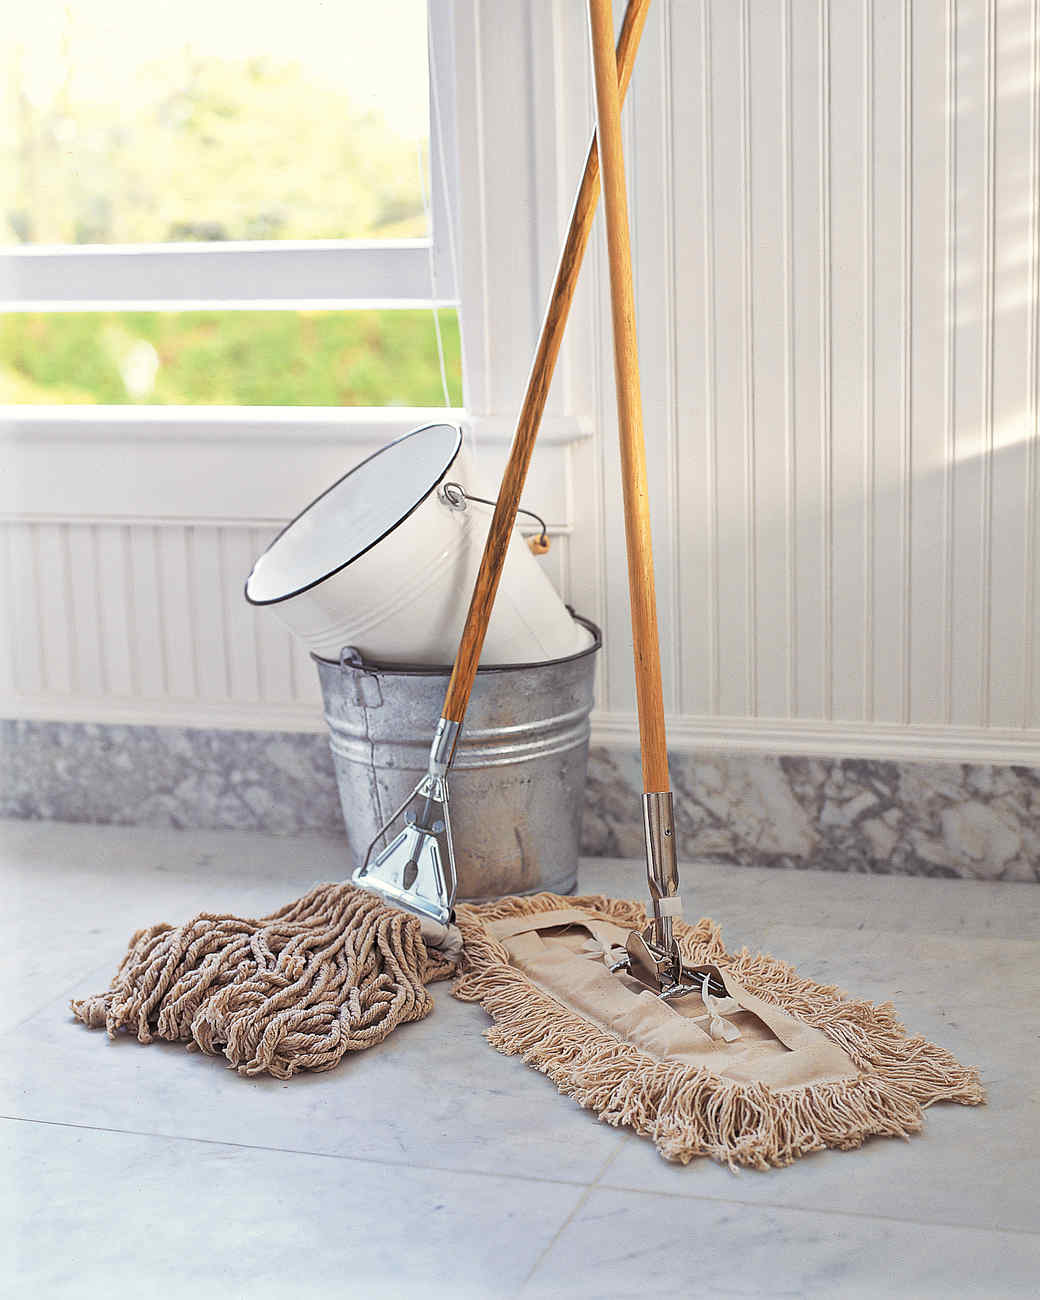 Diy carpet cleaners martha stewart diy carpet cleaners ppazfo